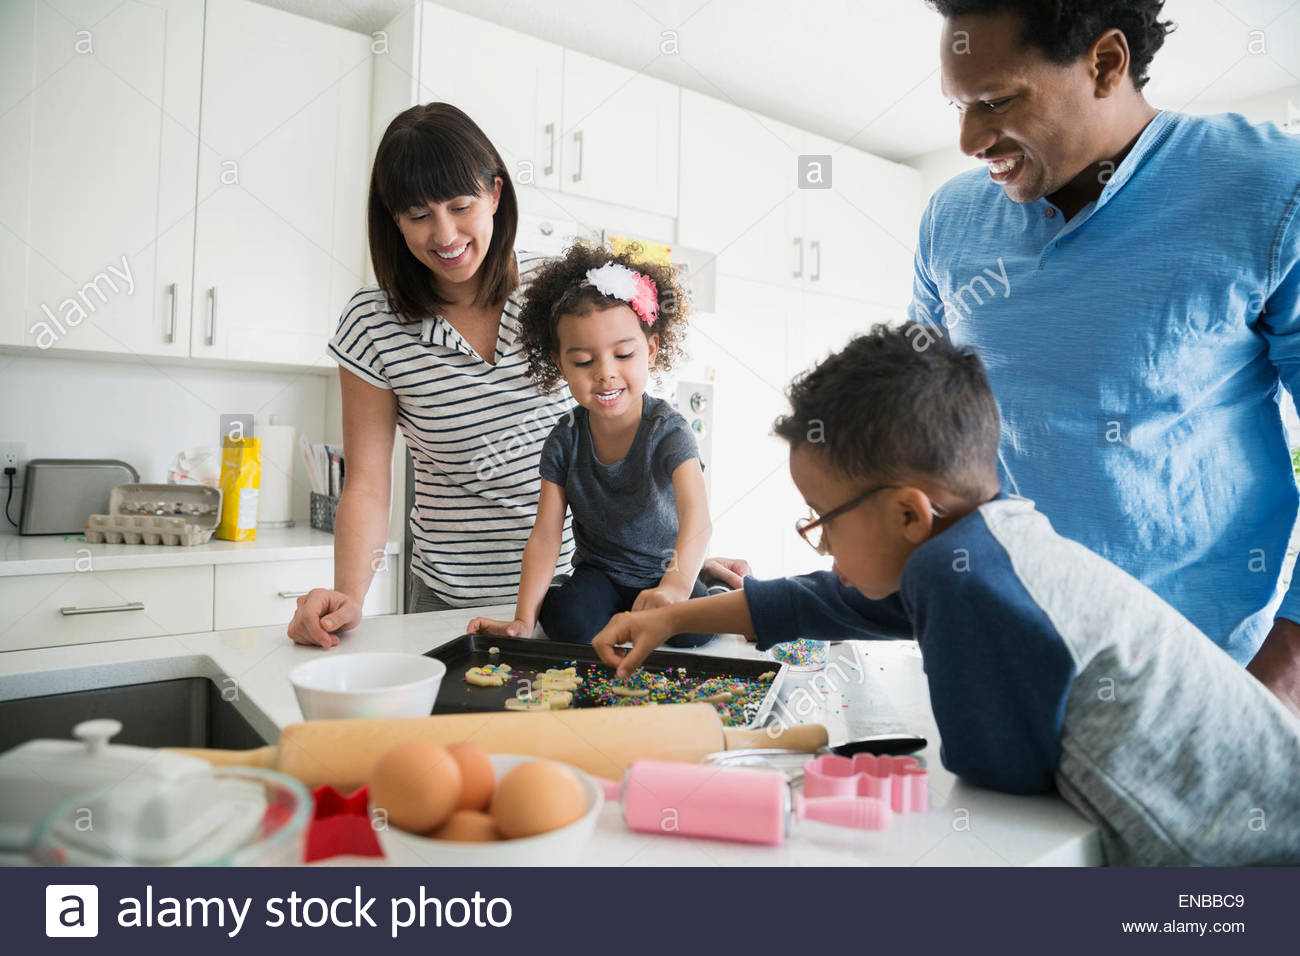 Family baking and decorating sugar cookies in kitchen - Stock Image